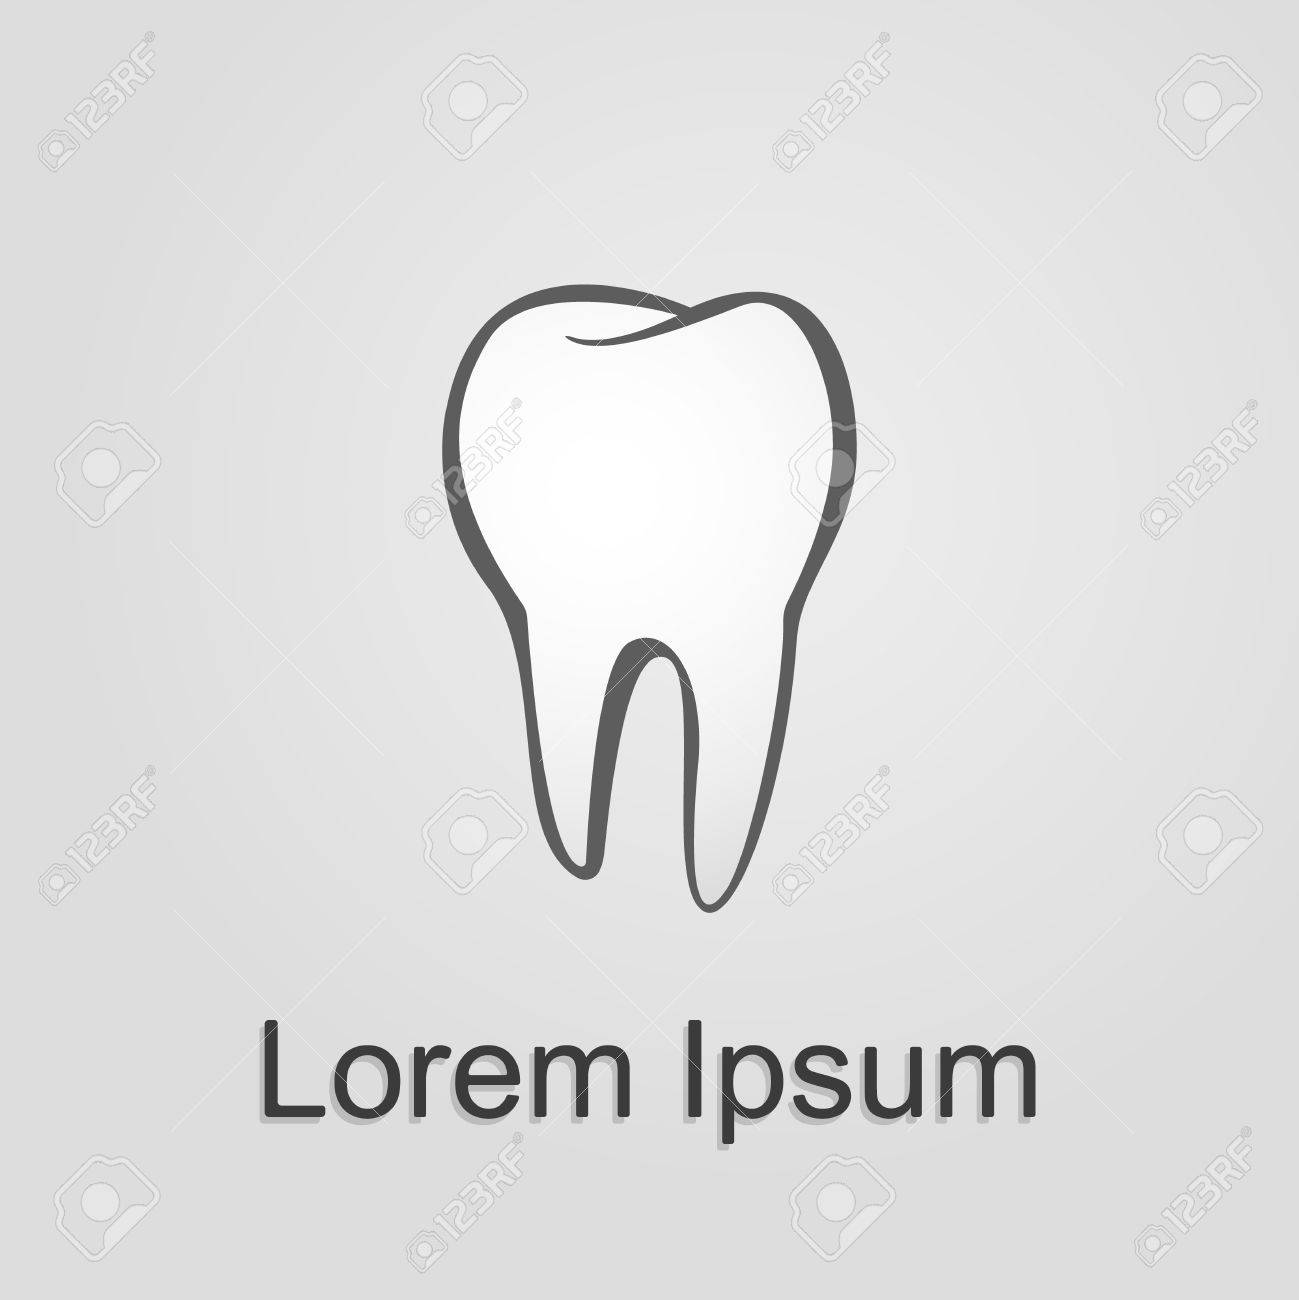 Tooth On A Grey Template Design Element Illustration Stock